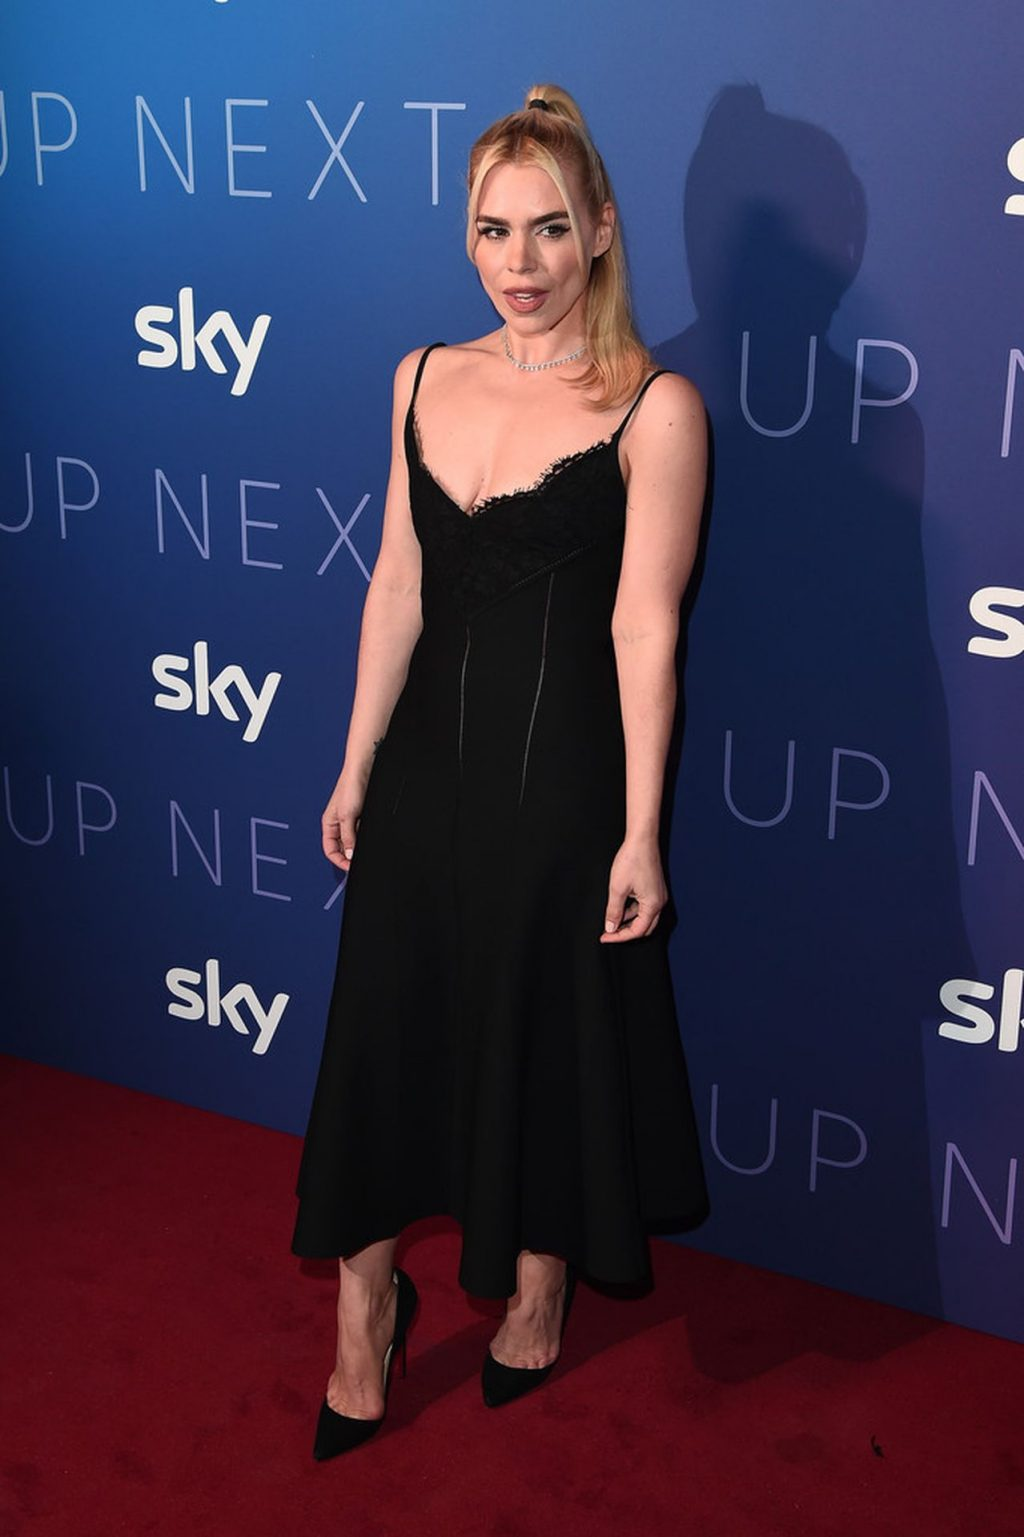 Billie Piper Sexy The Fappening Blog 3 1024x1537 - Billie Piper Smiles at the Sky Up Next Event (67 Photos)